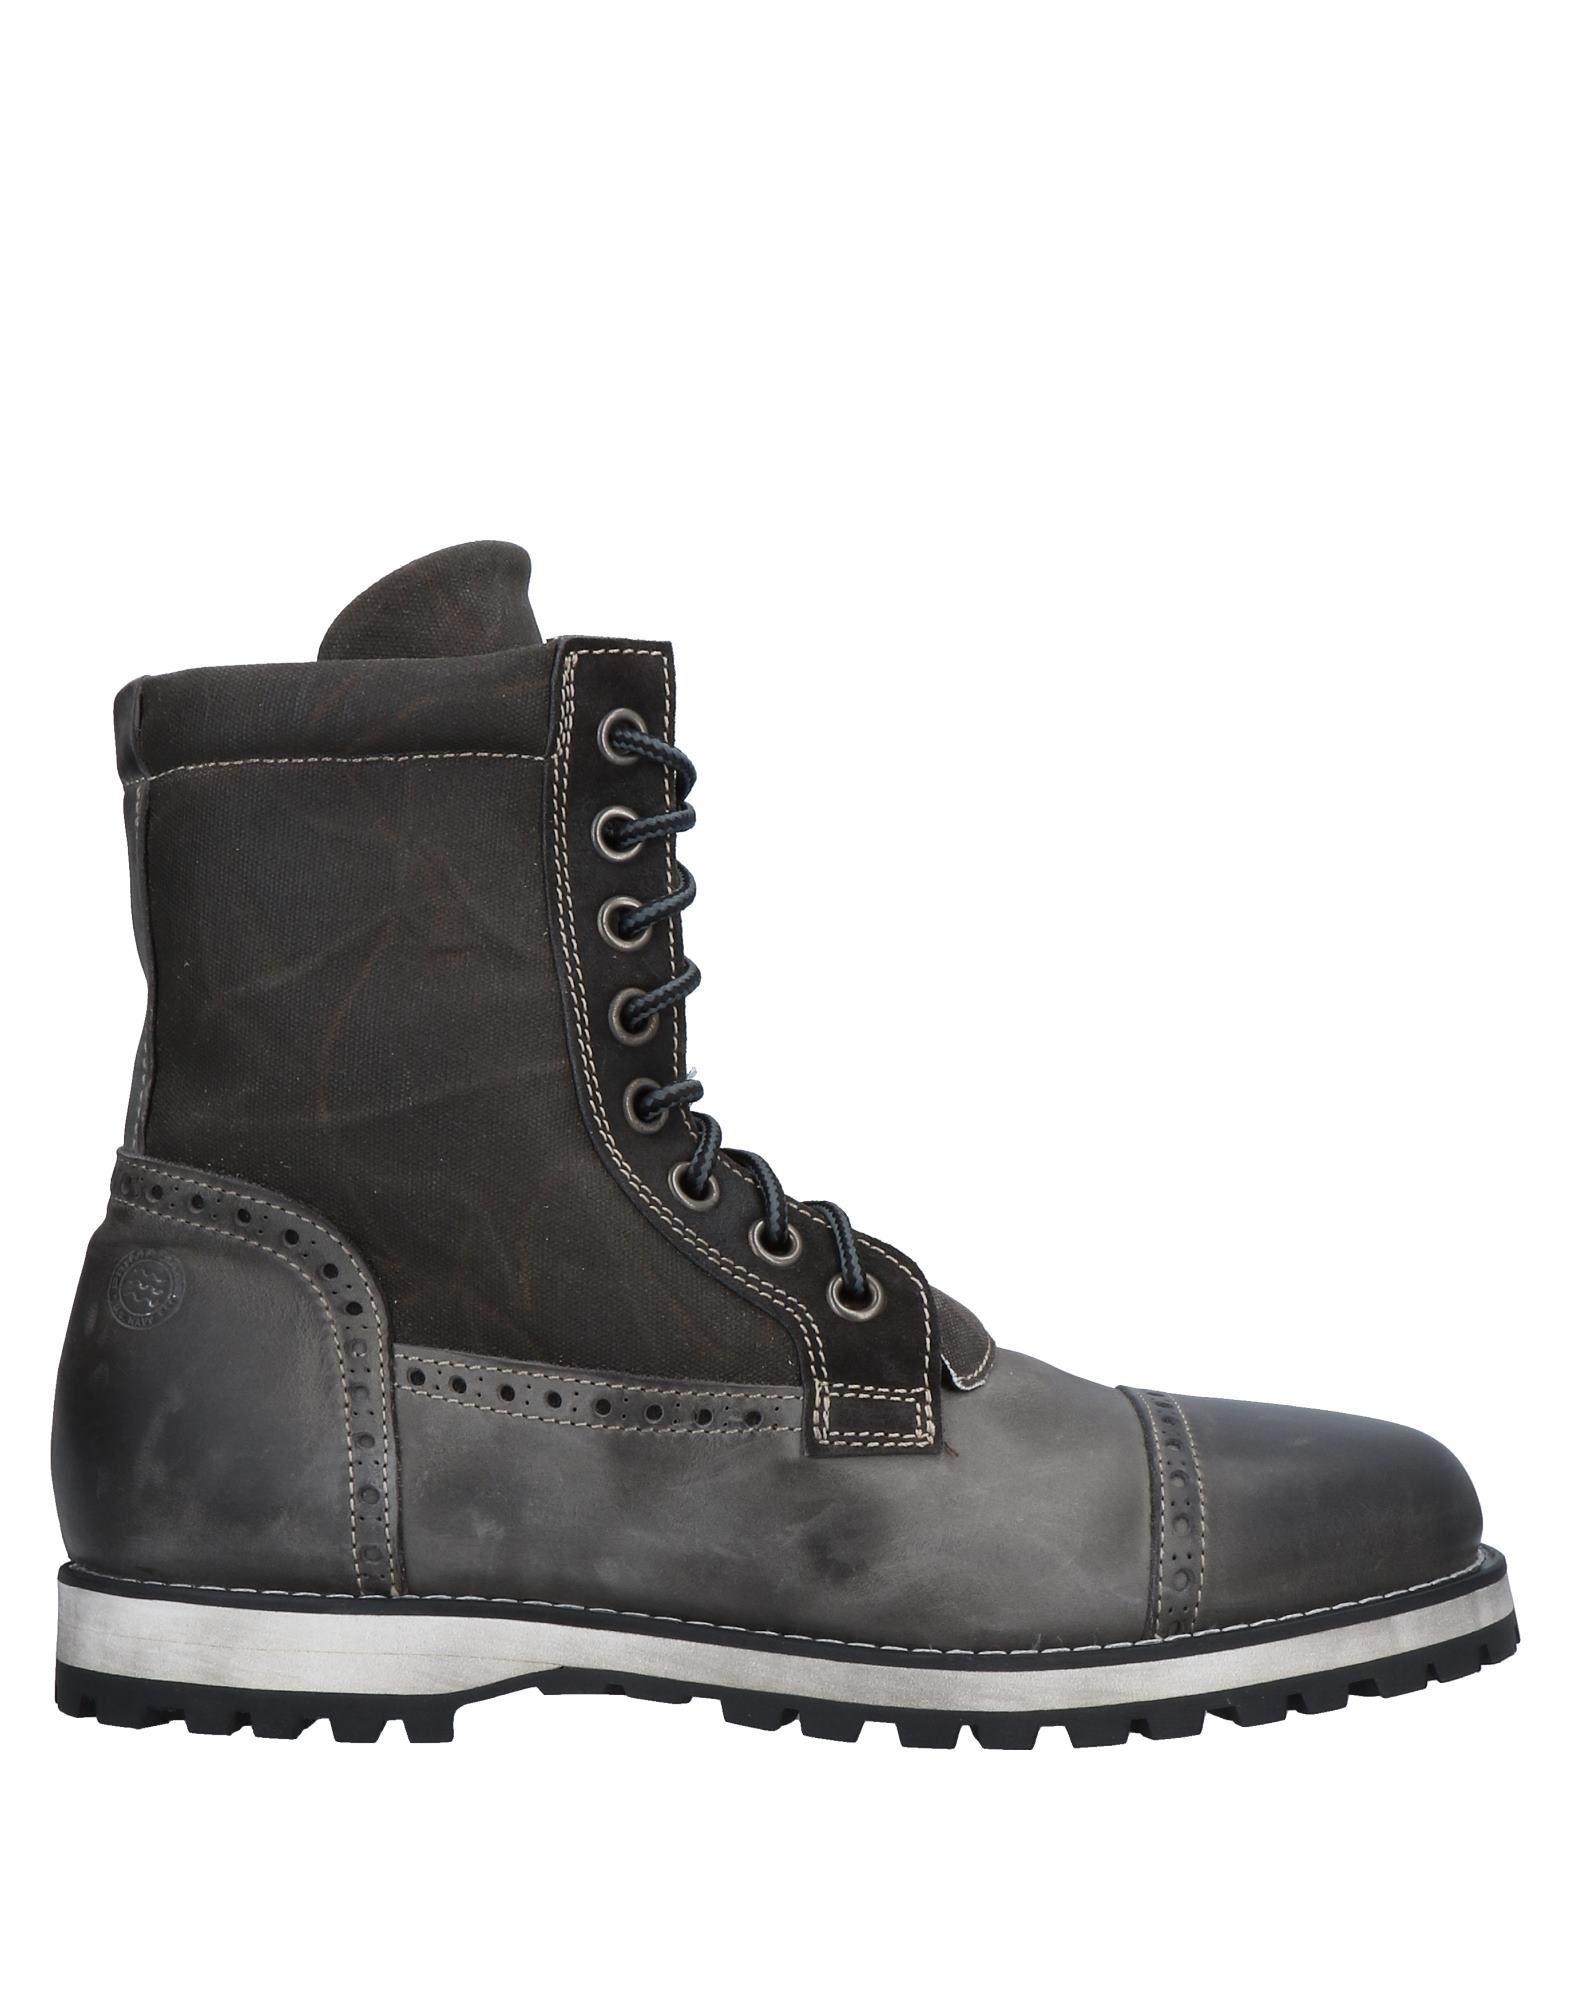 Primabase Boots - - - Men Primabase Boots online on  Canada - 11581848DK a4a183